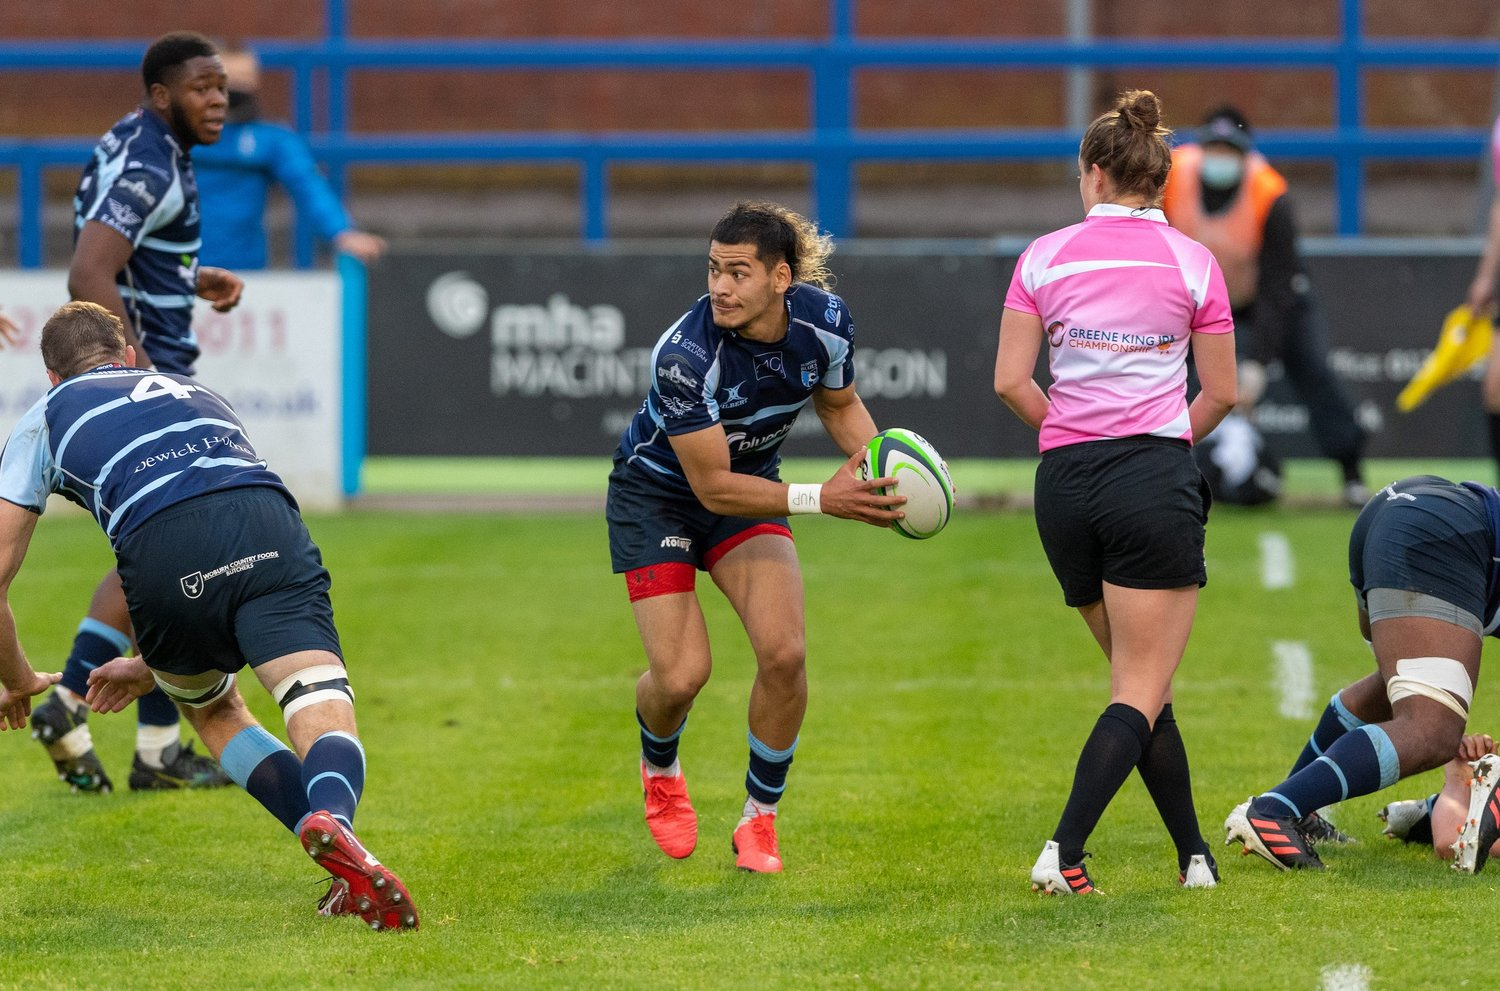 Connor Tupai of Northampton Saints featuring for Bedford